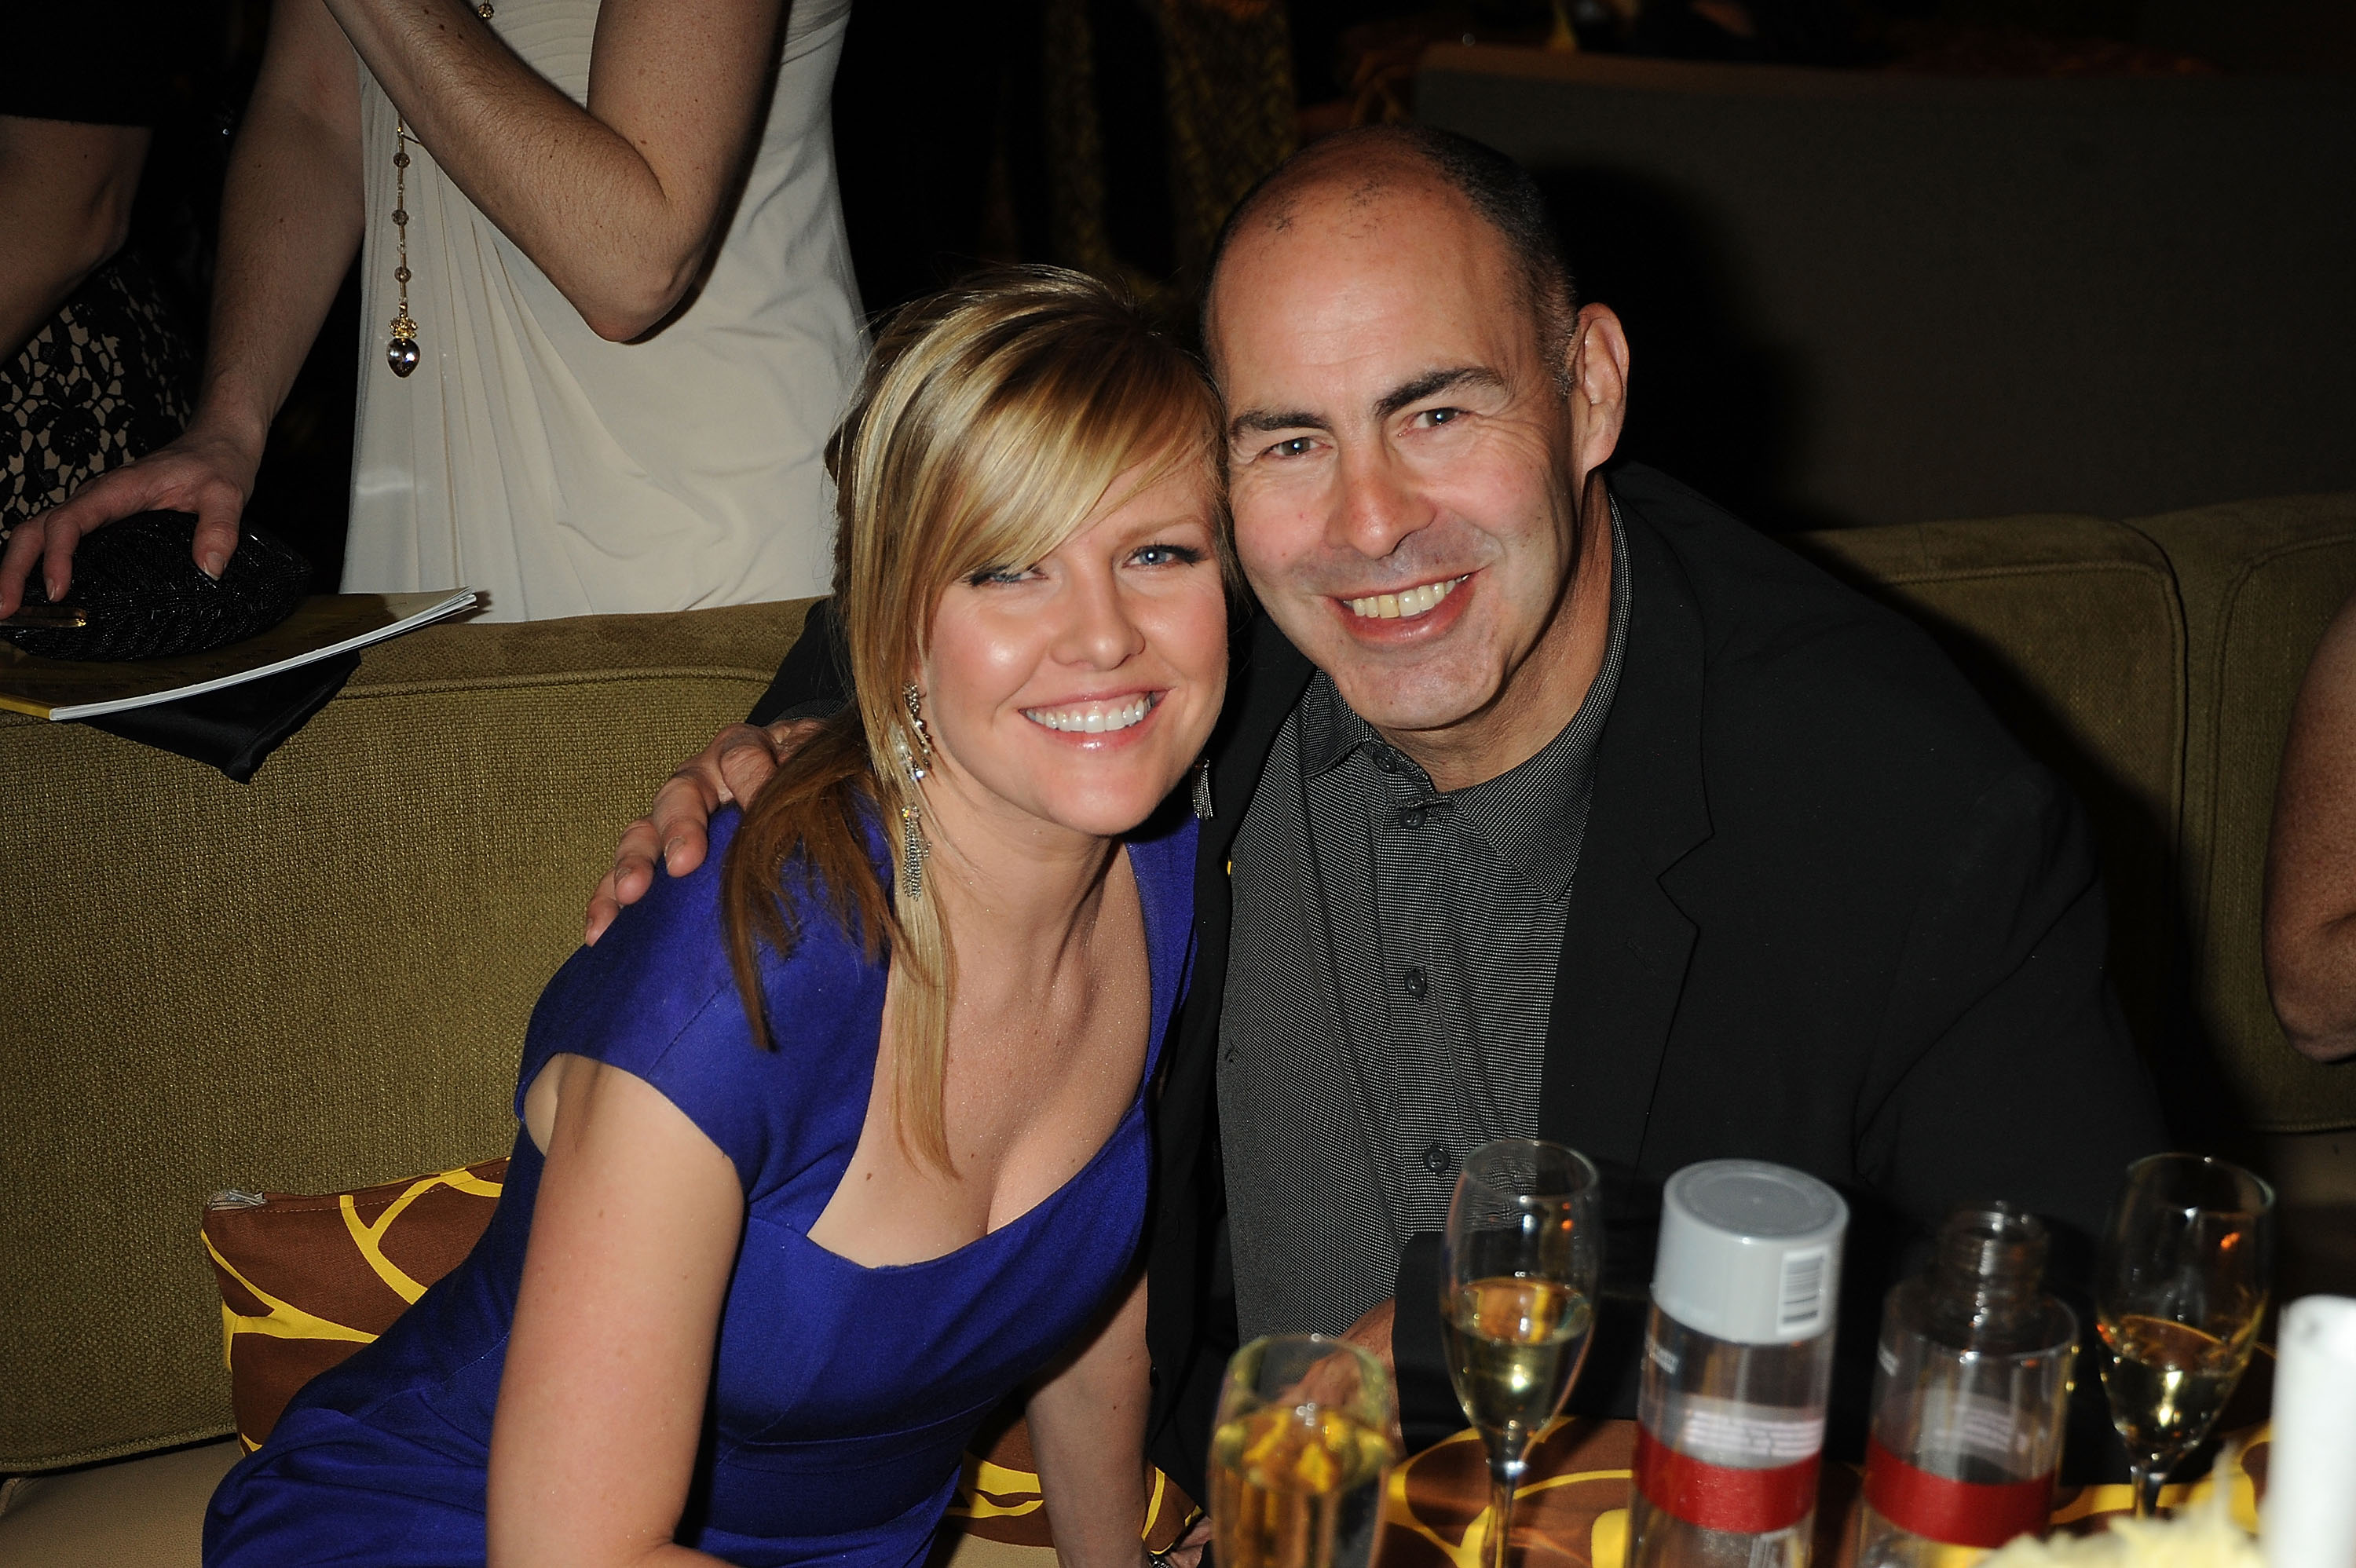 Ashley Jensen and Terrence Beesley